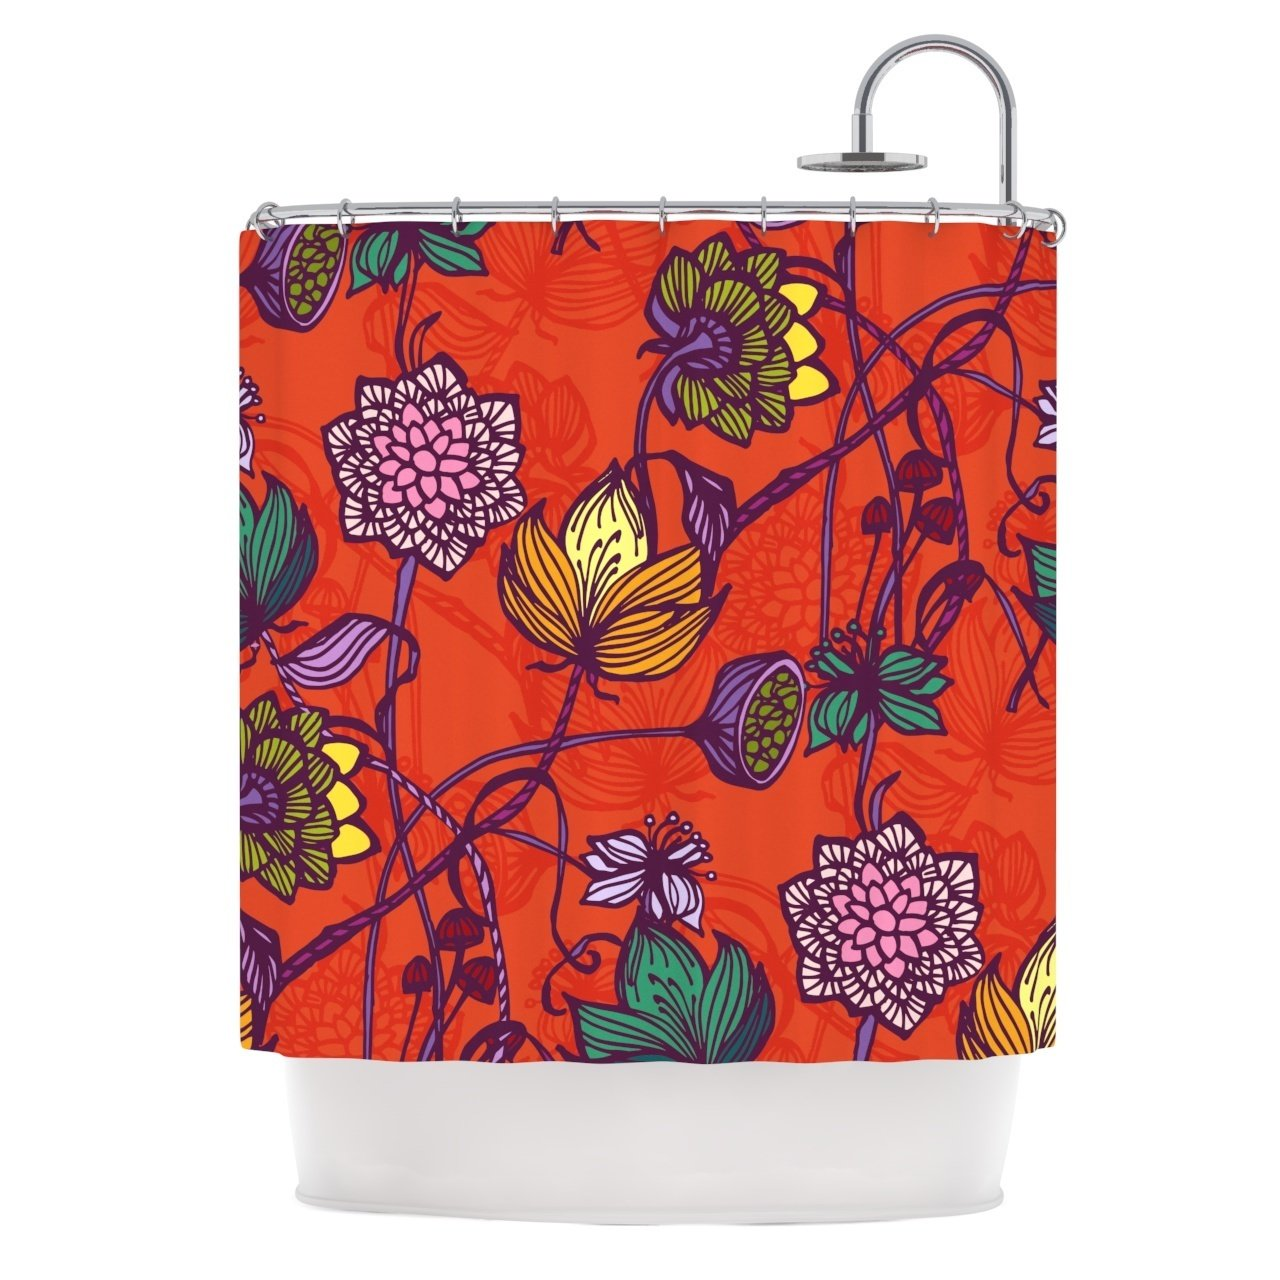 1 Piece 69''x70'' Girls Garden Blooms Flowers Themed Shower Curtain, All Over Stylish Nature Love Bohemian Blossom Floral Print Bathtub Curtain, Abstract Vibrant Colors Orange Pink Purple, Polyester